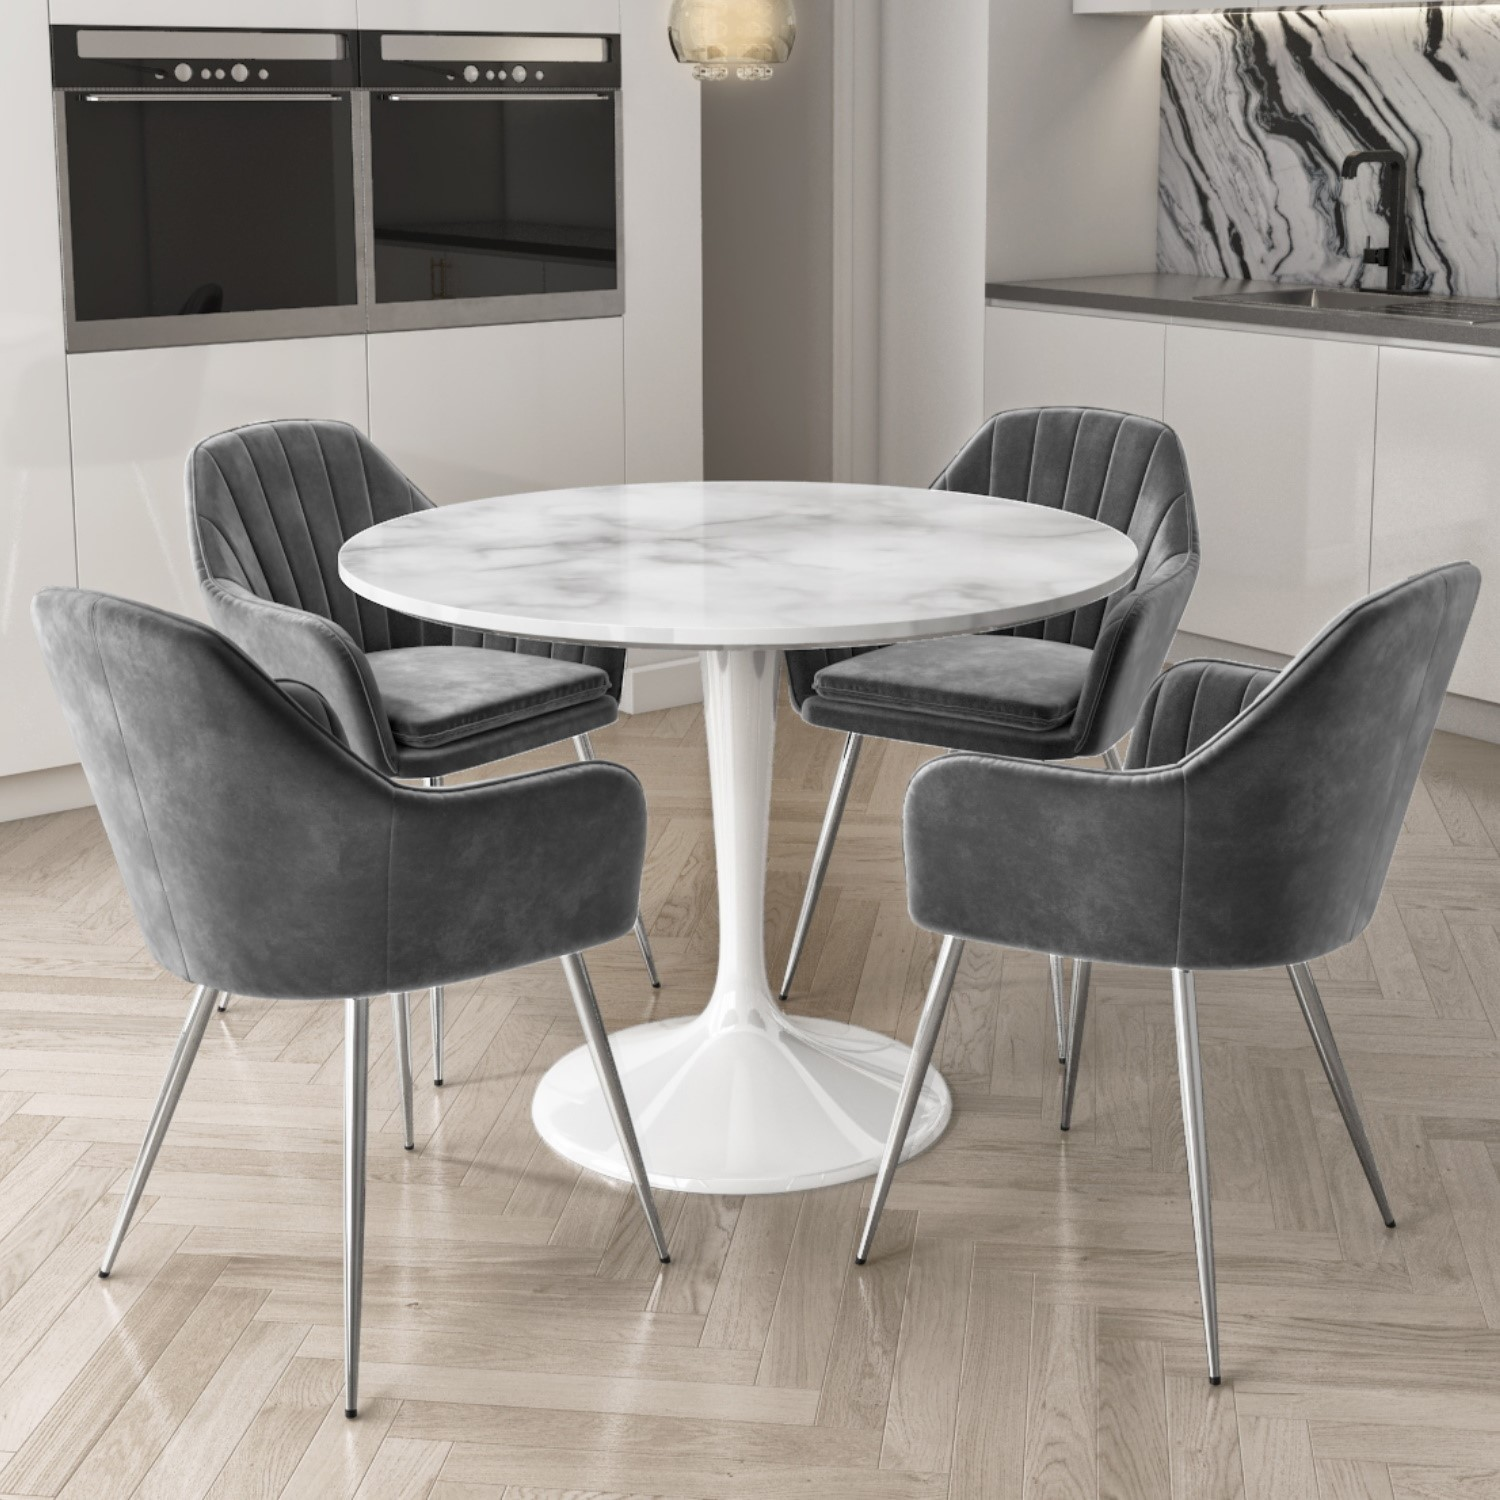 Aura Round White Faux Marble Dining Table With 4 Grey Velvet Dining Tub Chairs With Chrome Legs Furniture123